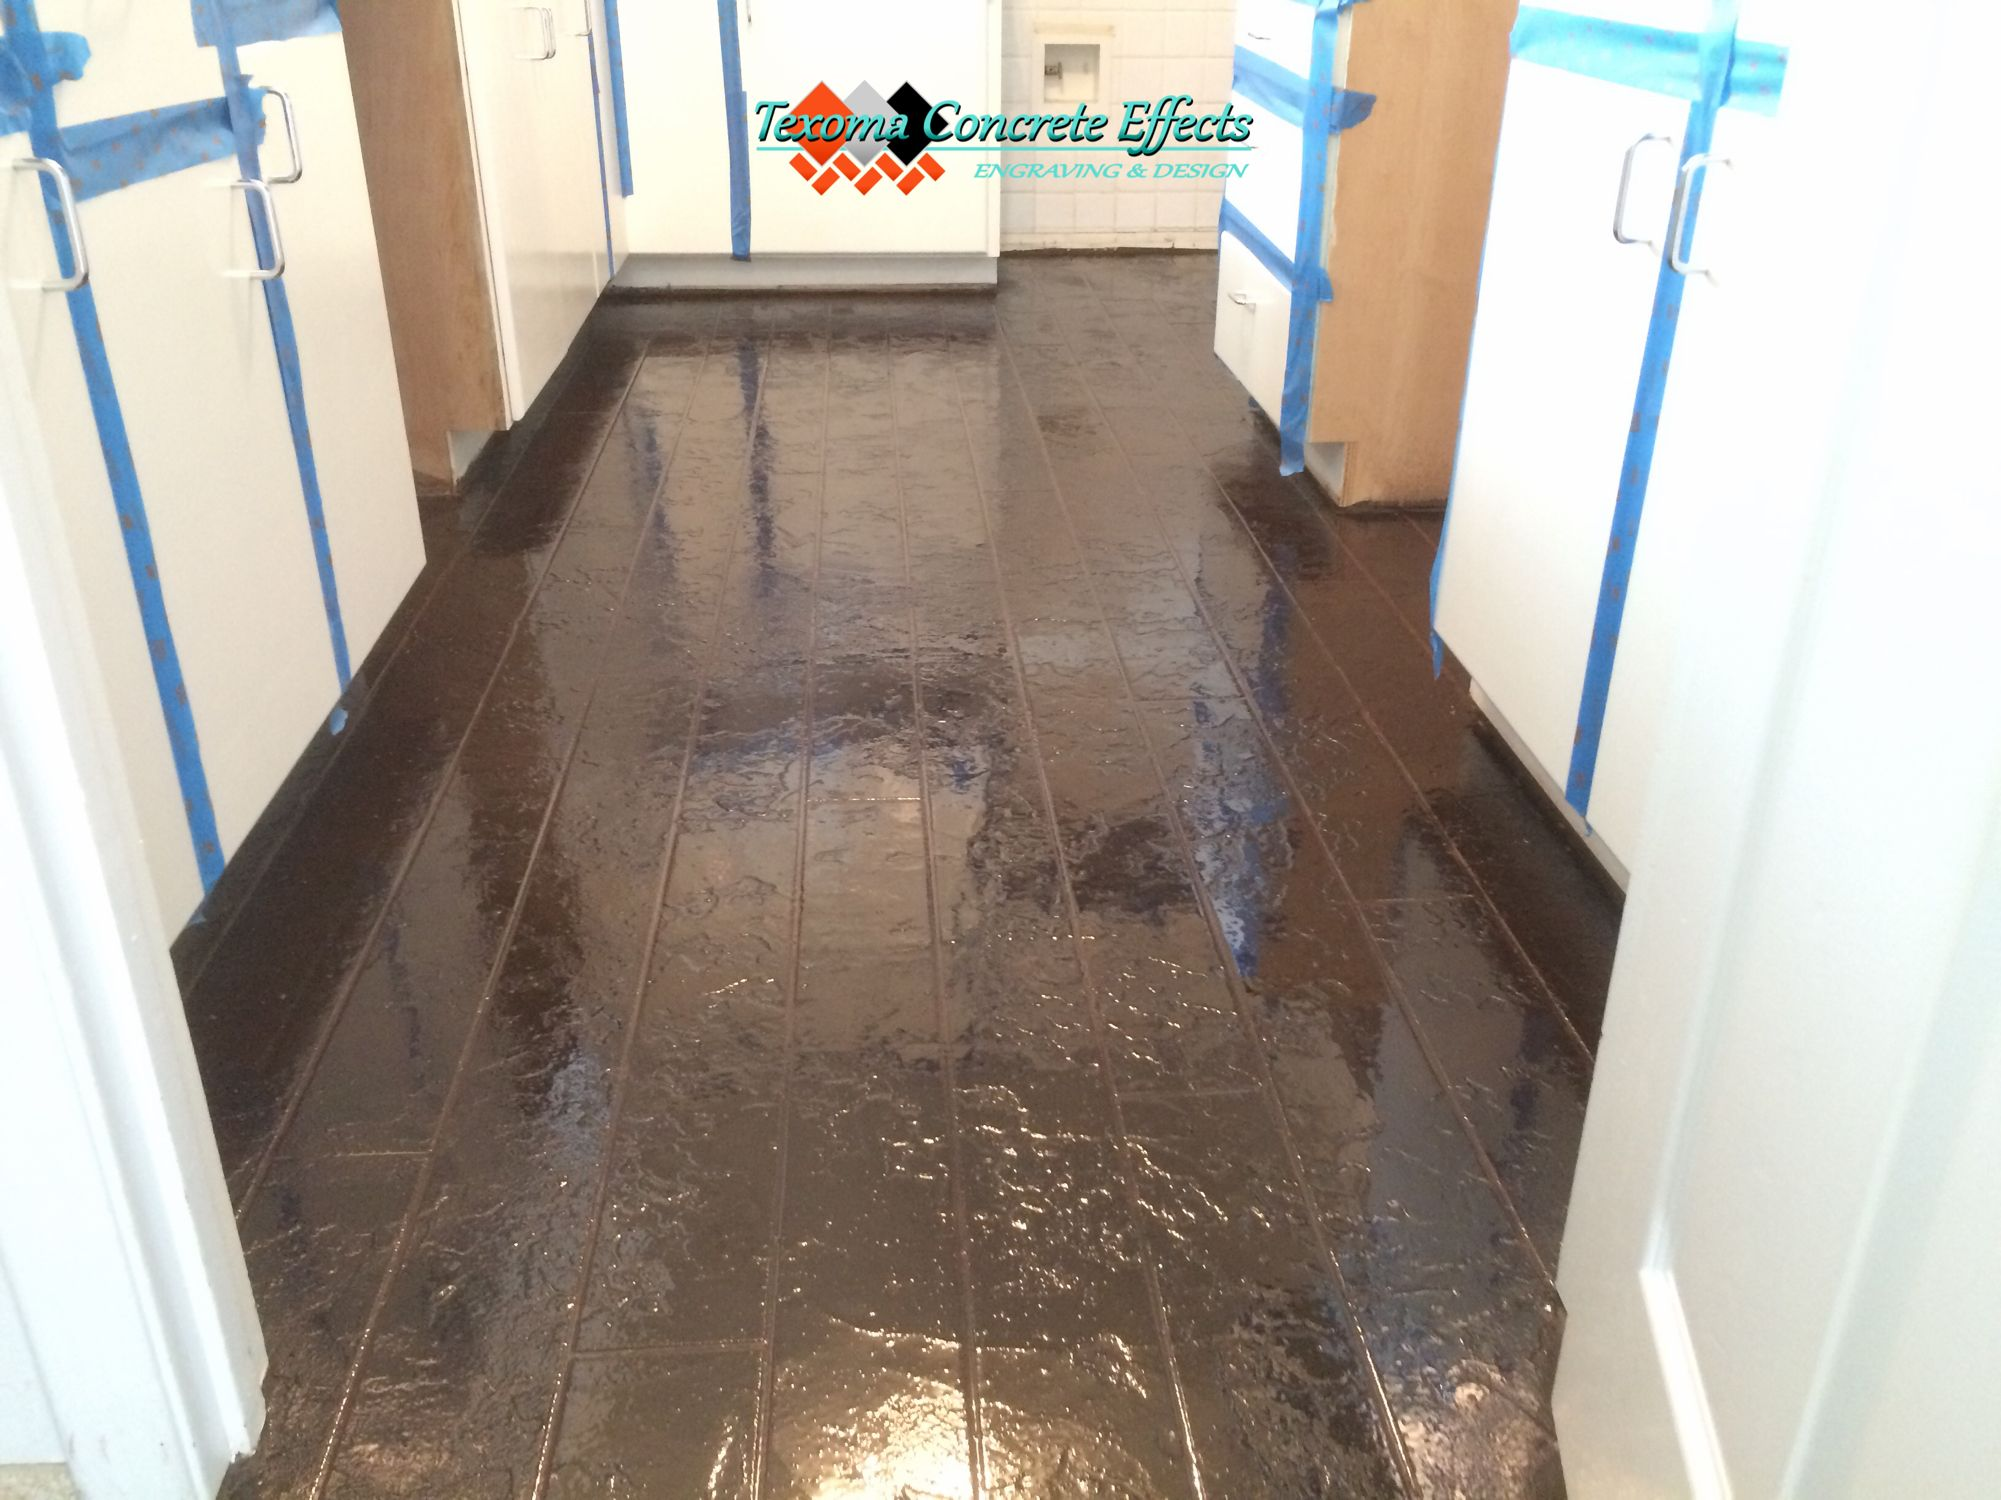 Stained Concrete Overlay Wood Plank Design In Kitchen By Texoma Concrete Effects Iowa Park Tx Stained Concrete Concrete Overlay Wood Planks